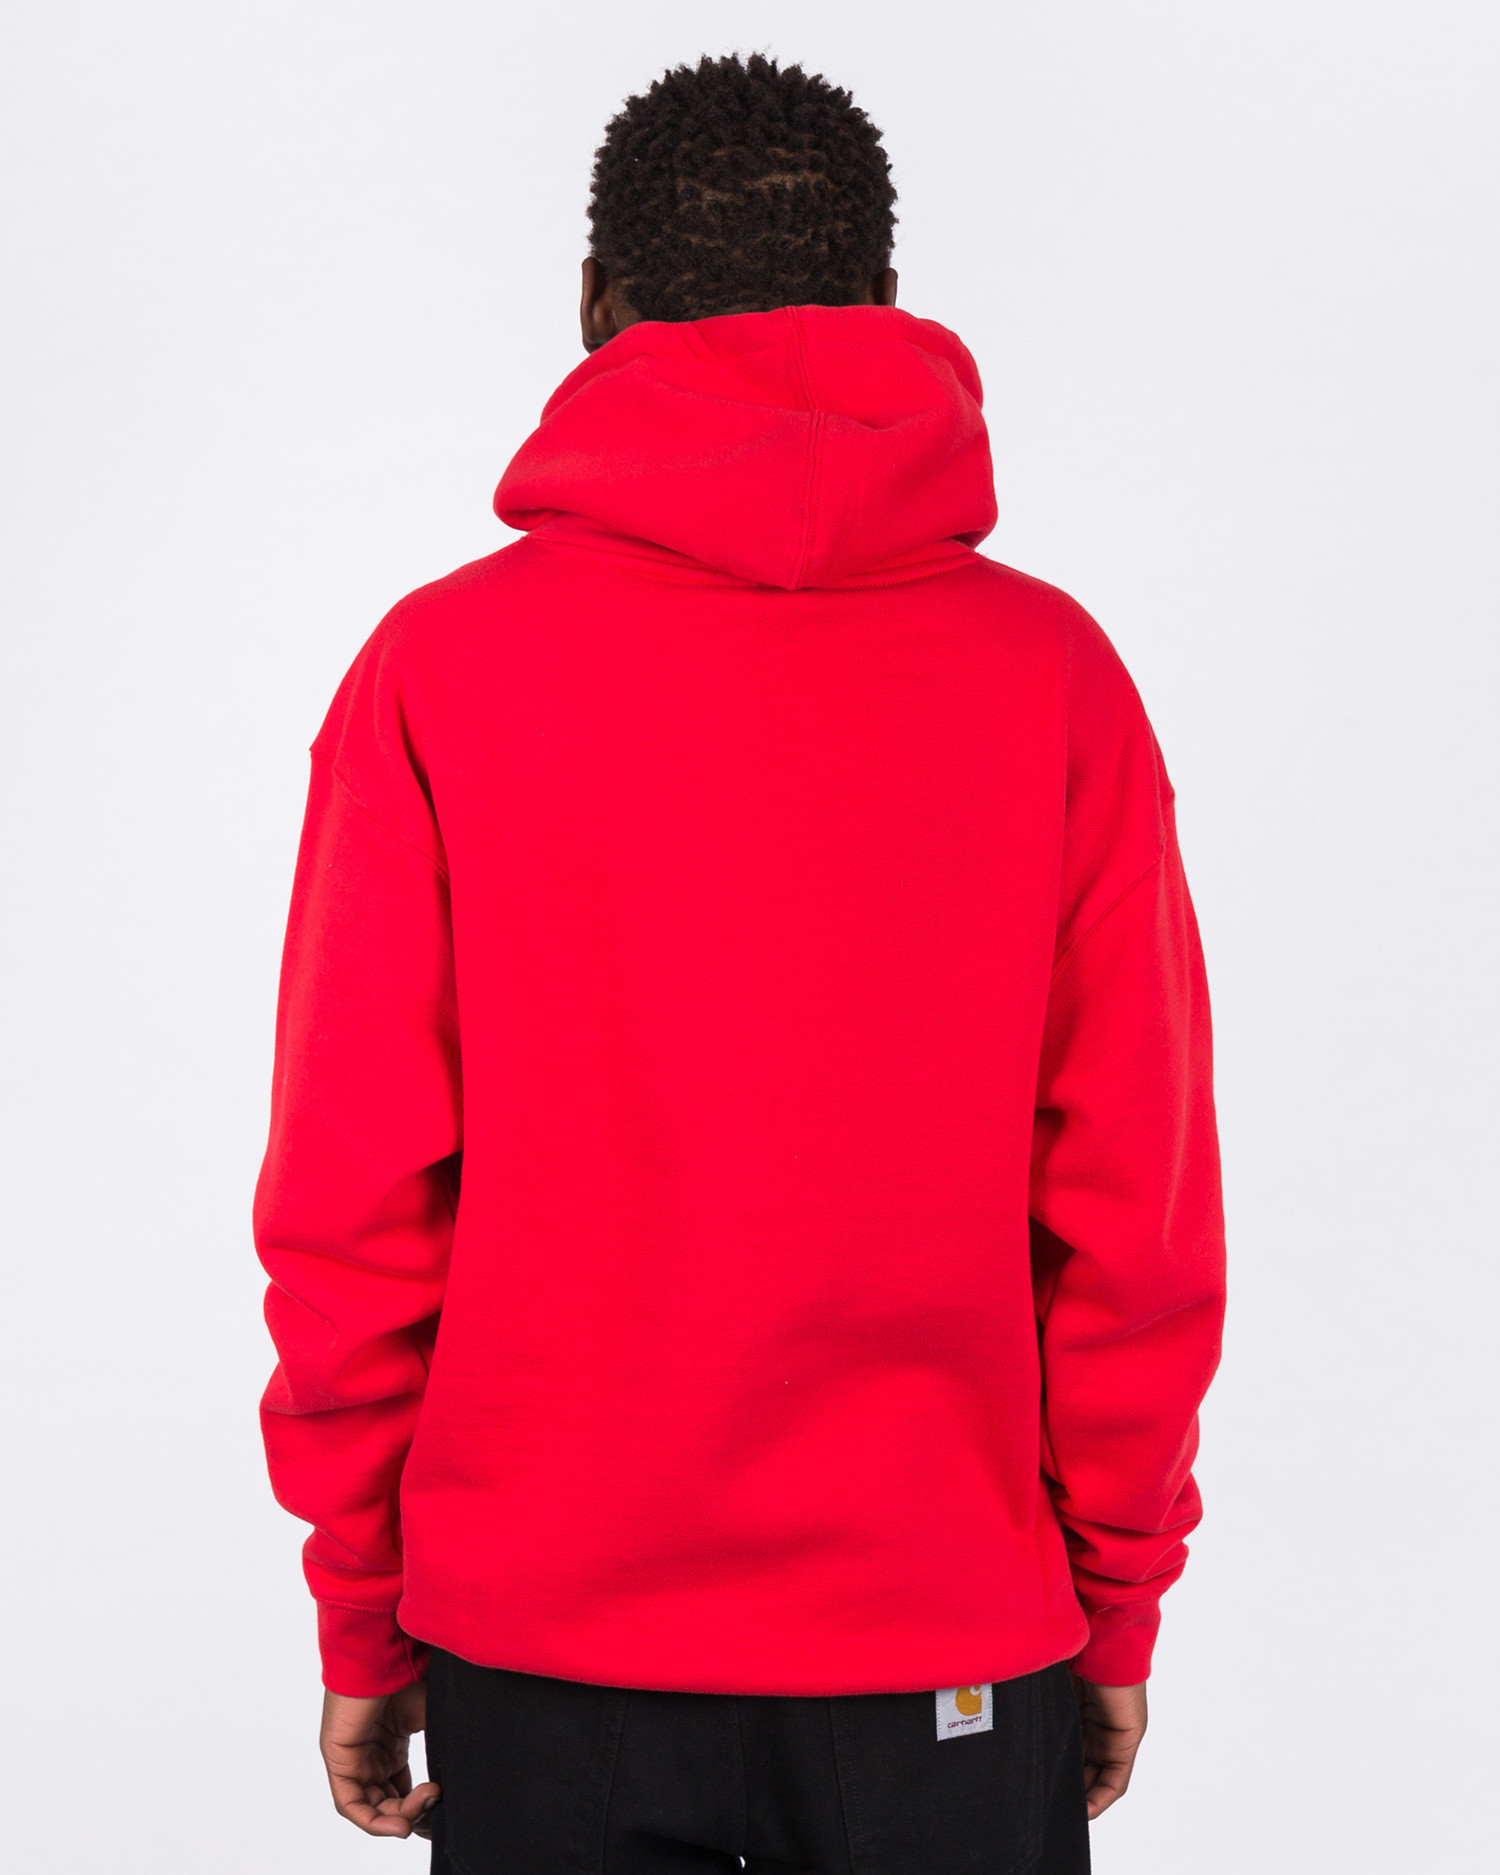 Call me 917 Area Code Pullover Hood Red